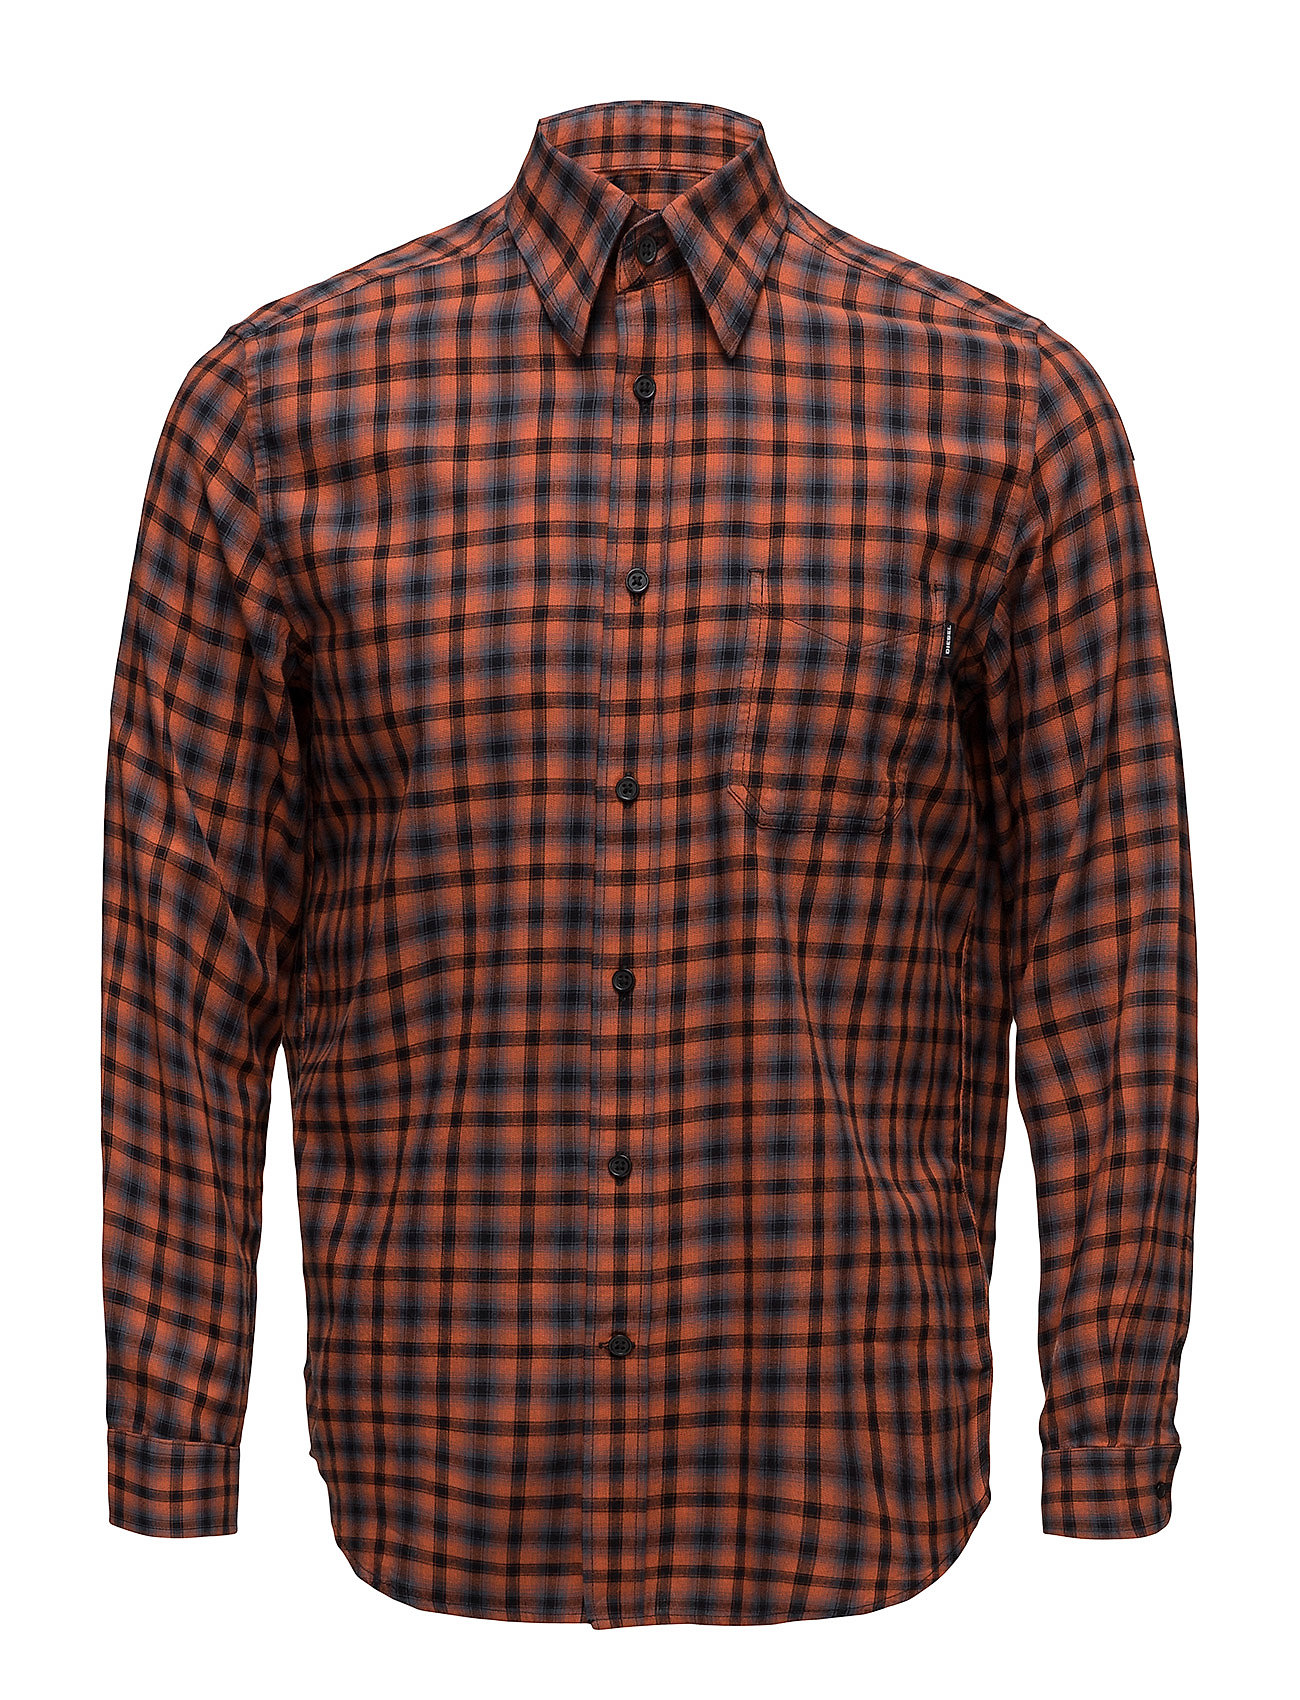 Diesel Men S-CULL-A SHIRT - HARVEST PUMPKIN